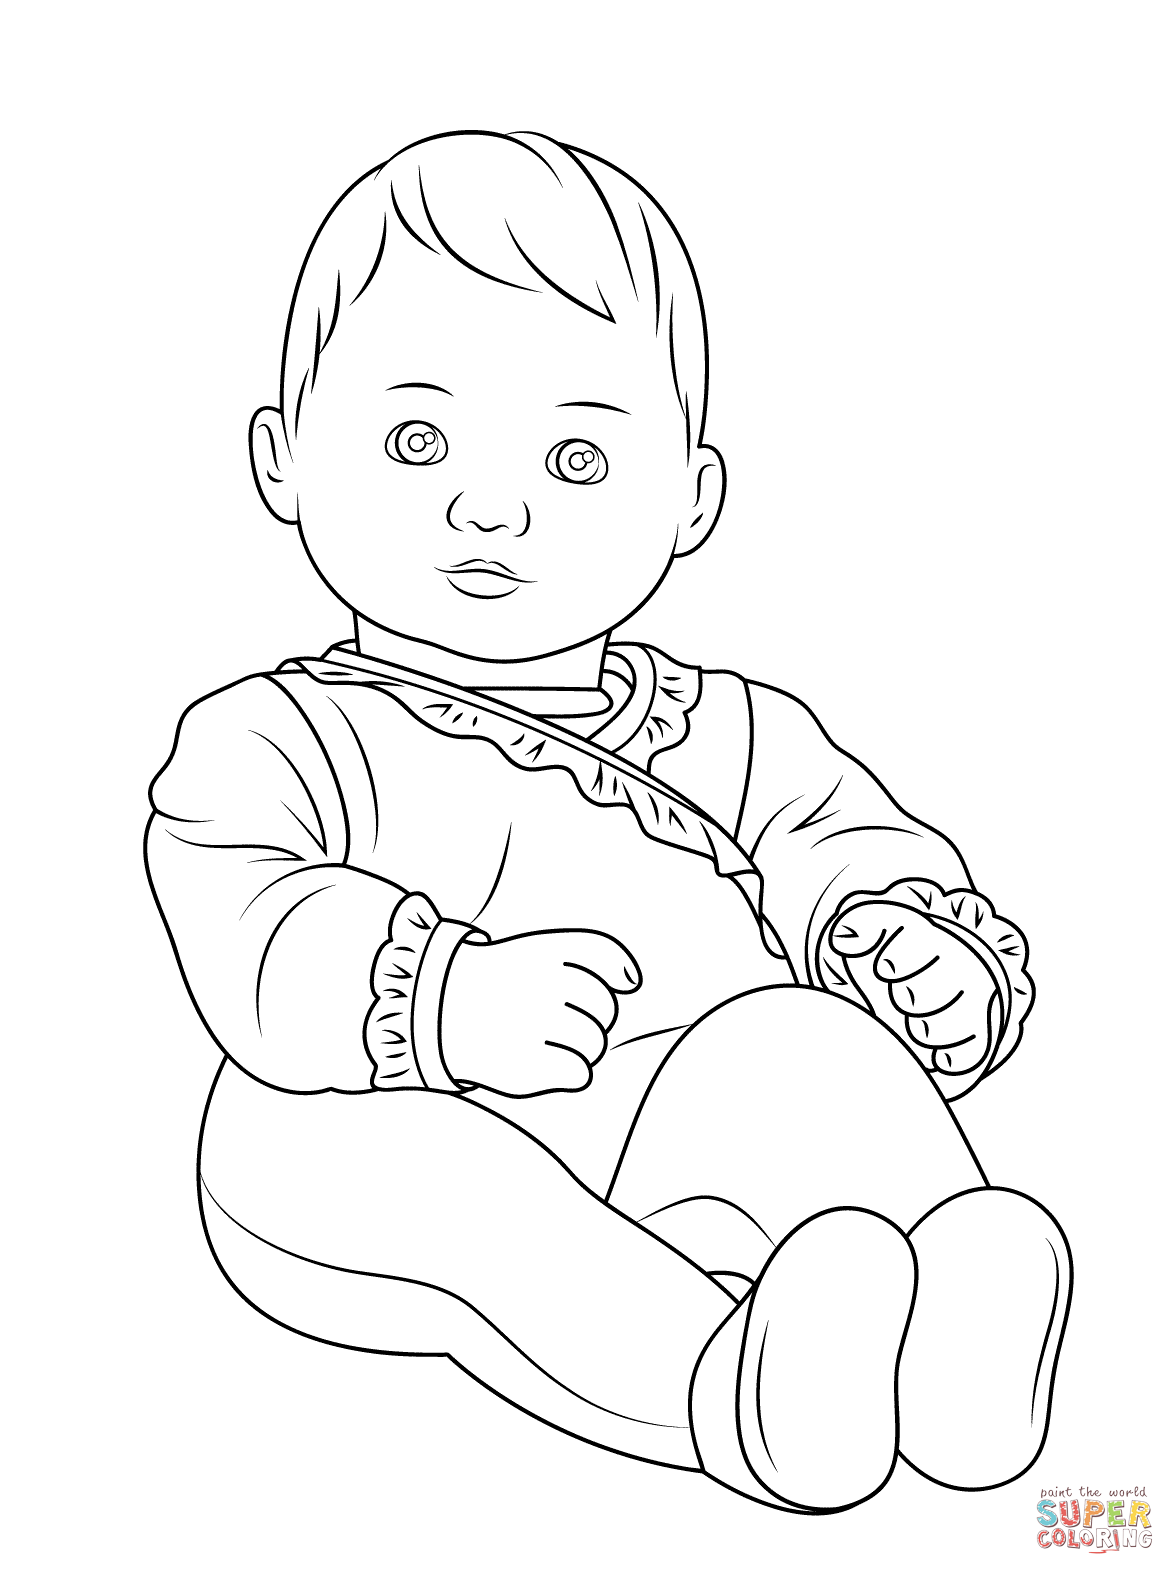 baby moshling coloring pages - photo#24